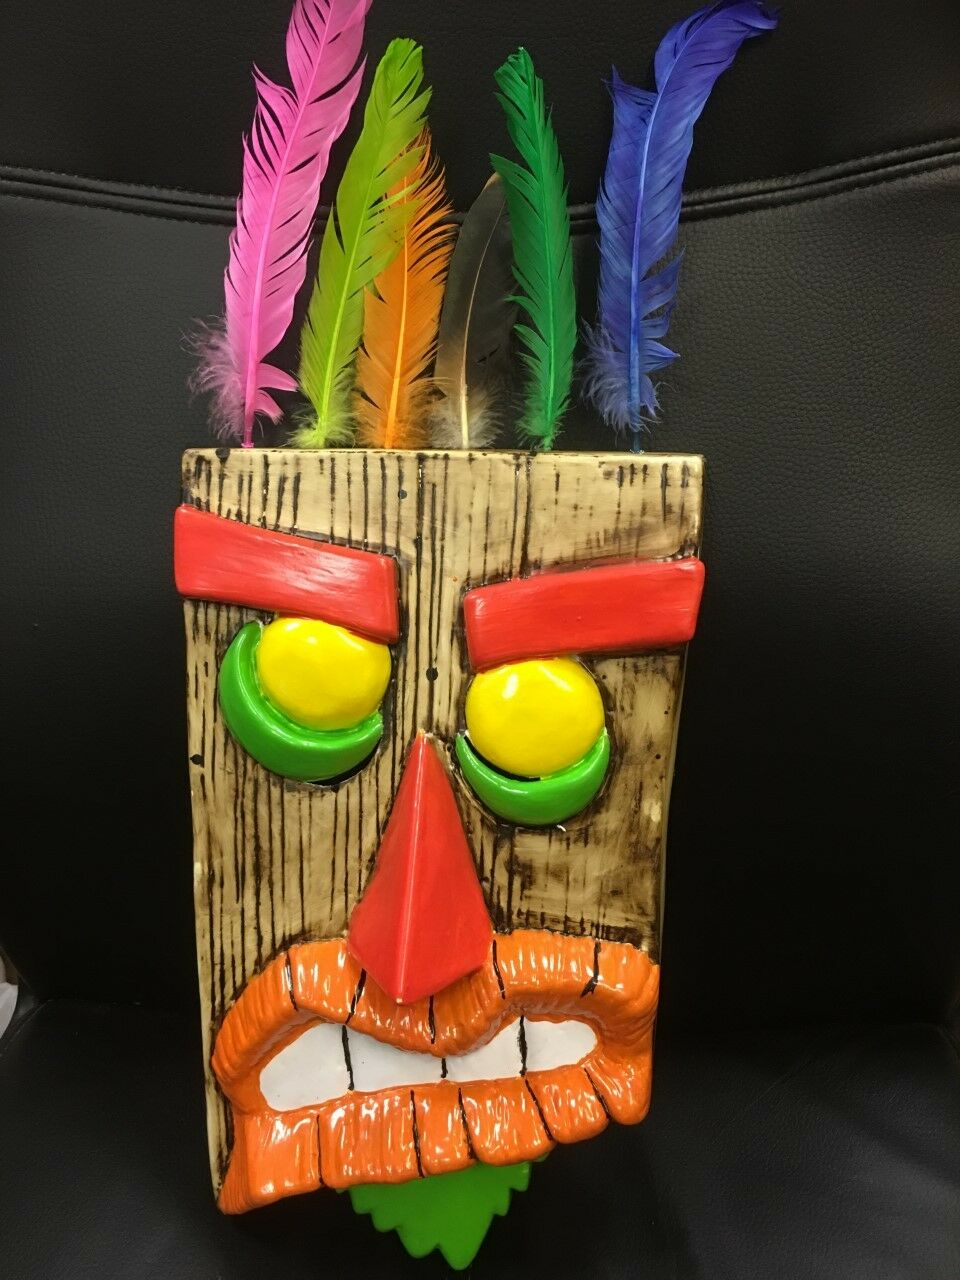 UK AKU AKU CRASH BANDICOOT UKA UKA HALLOWEEN FANCY DRESS UP MASK ADULT COSPLAY